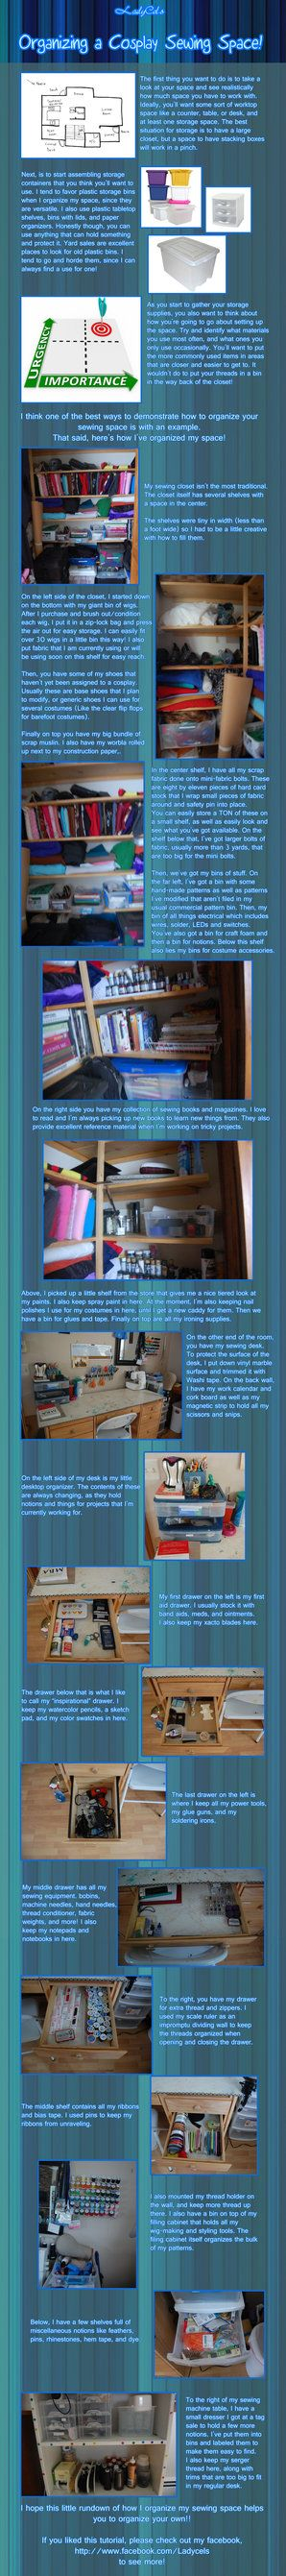 Organizing a Cosplay Sewing Space by DragonLadyCels on deviantART